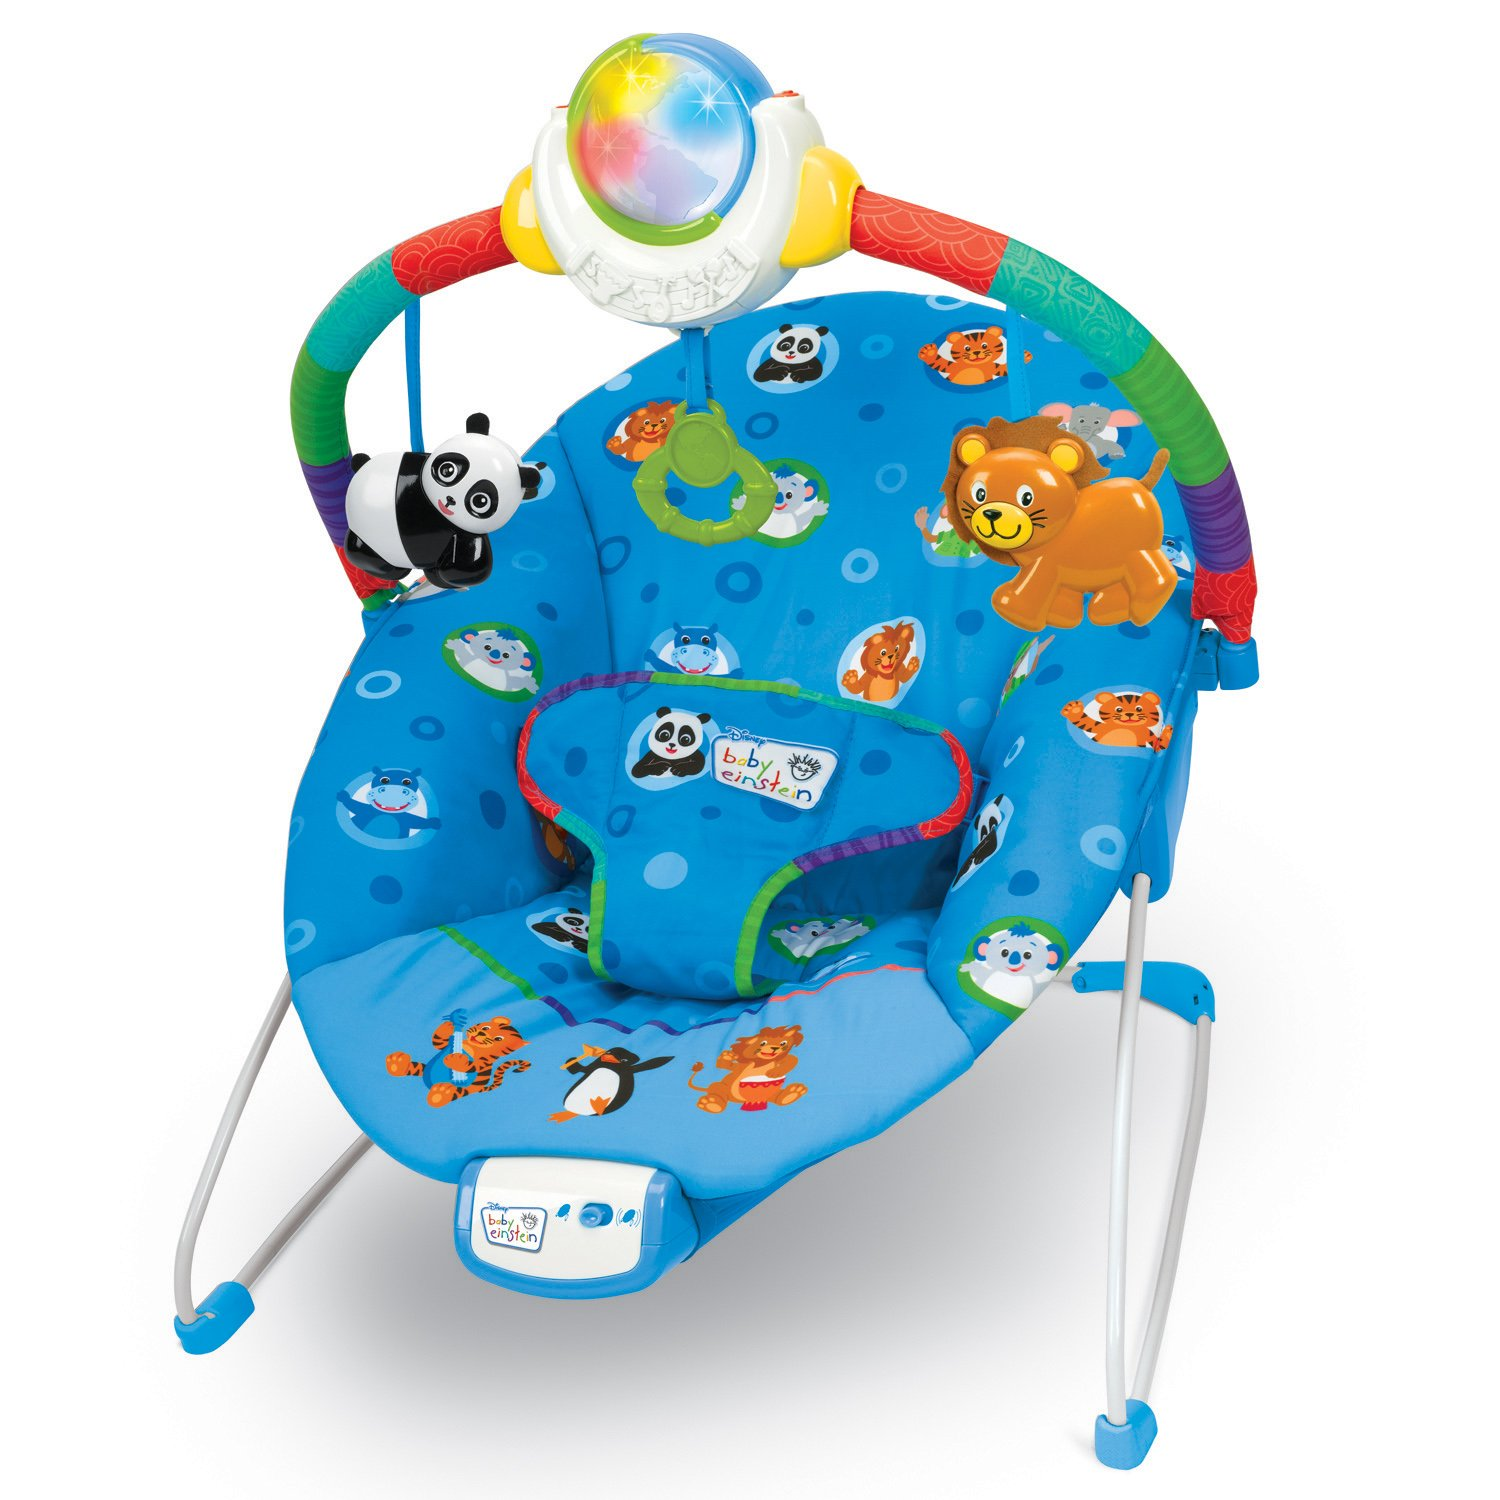 Amazon.com  Baby Einstein Around The World Cradling Bouncer (Discontinued by Manufacturer)  Infant Bouncers And Rockers  Baby  sc 1 st  Amazon.com & Amazon.com : Baby Einstein Around The World Cradling Bouncer ...